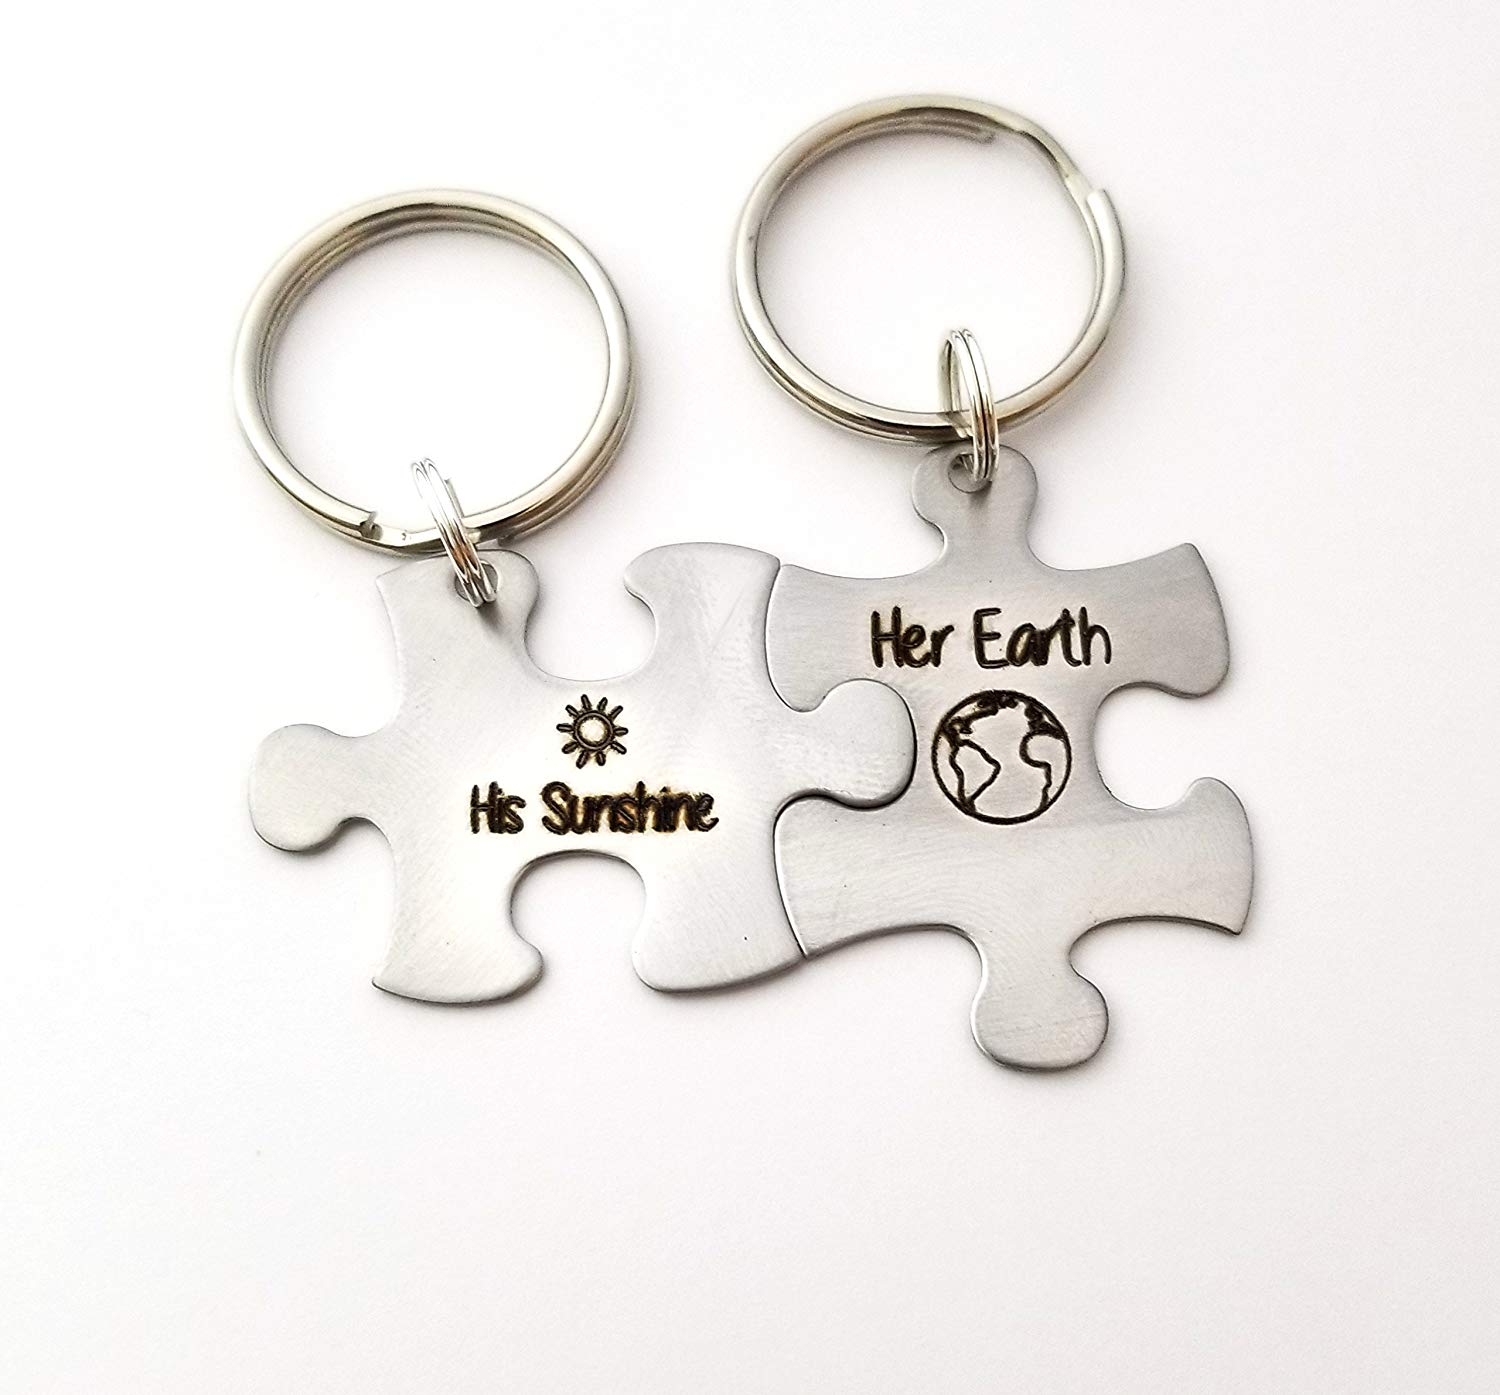 4201597823 Get Quotations · Puzzle Piece Keychain Set, Gift for Boyfriend, His Sunshine  Her Earth Set, Anniversary